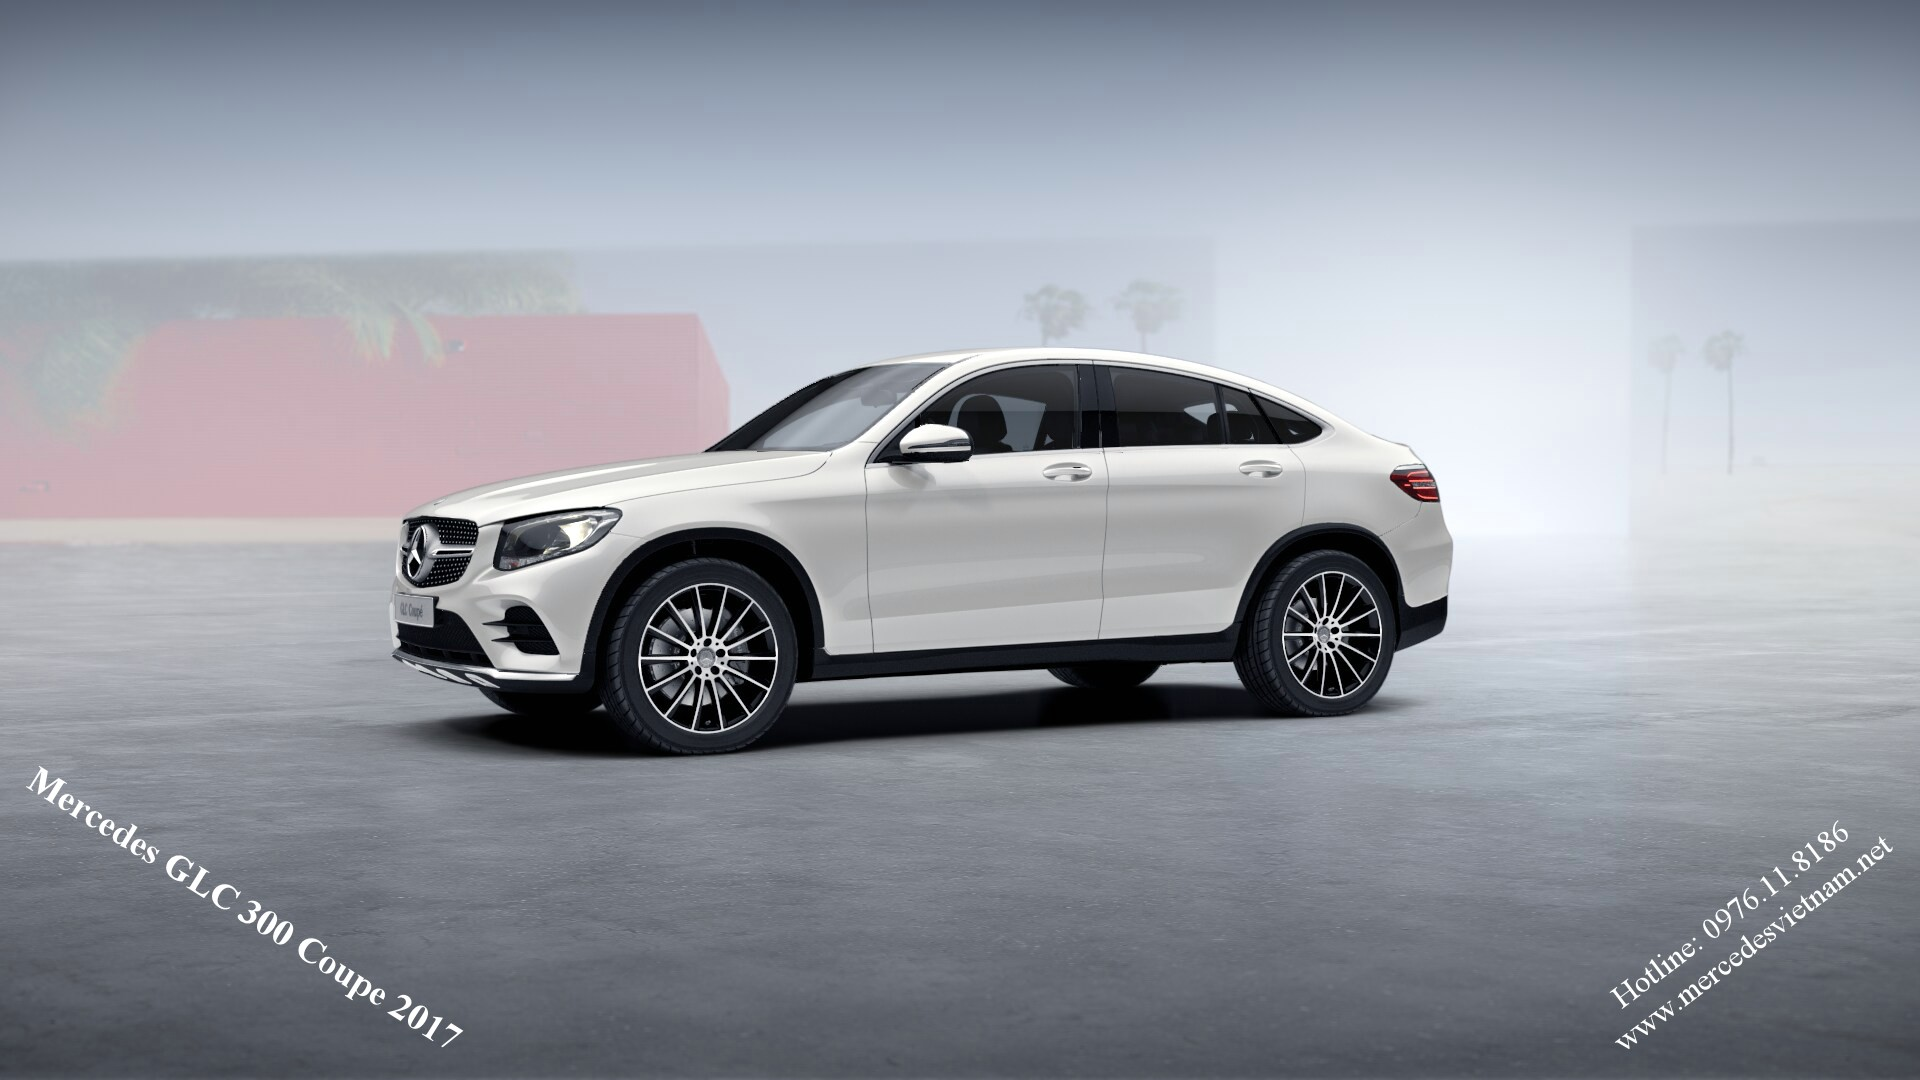 Mercedes GLC 300 Coupe